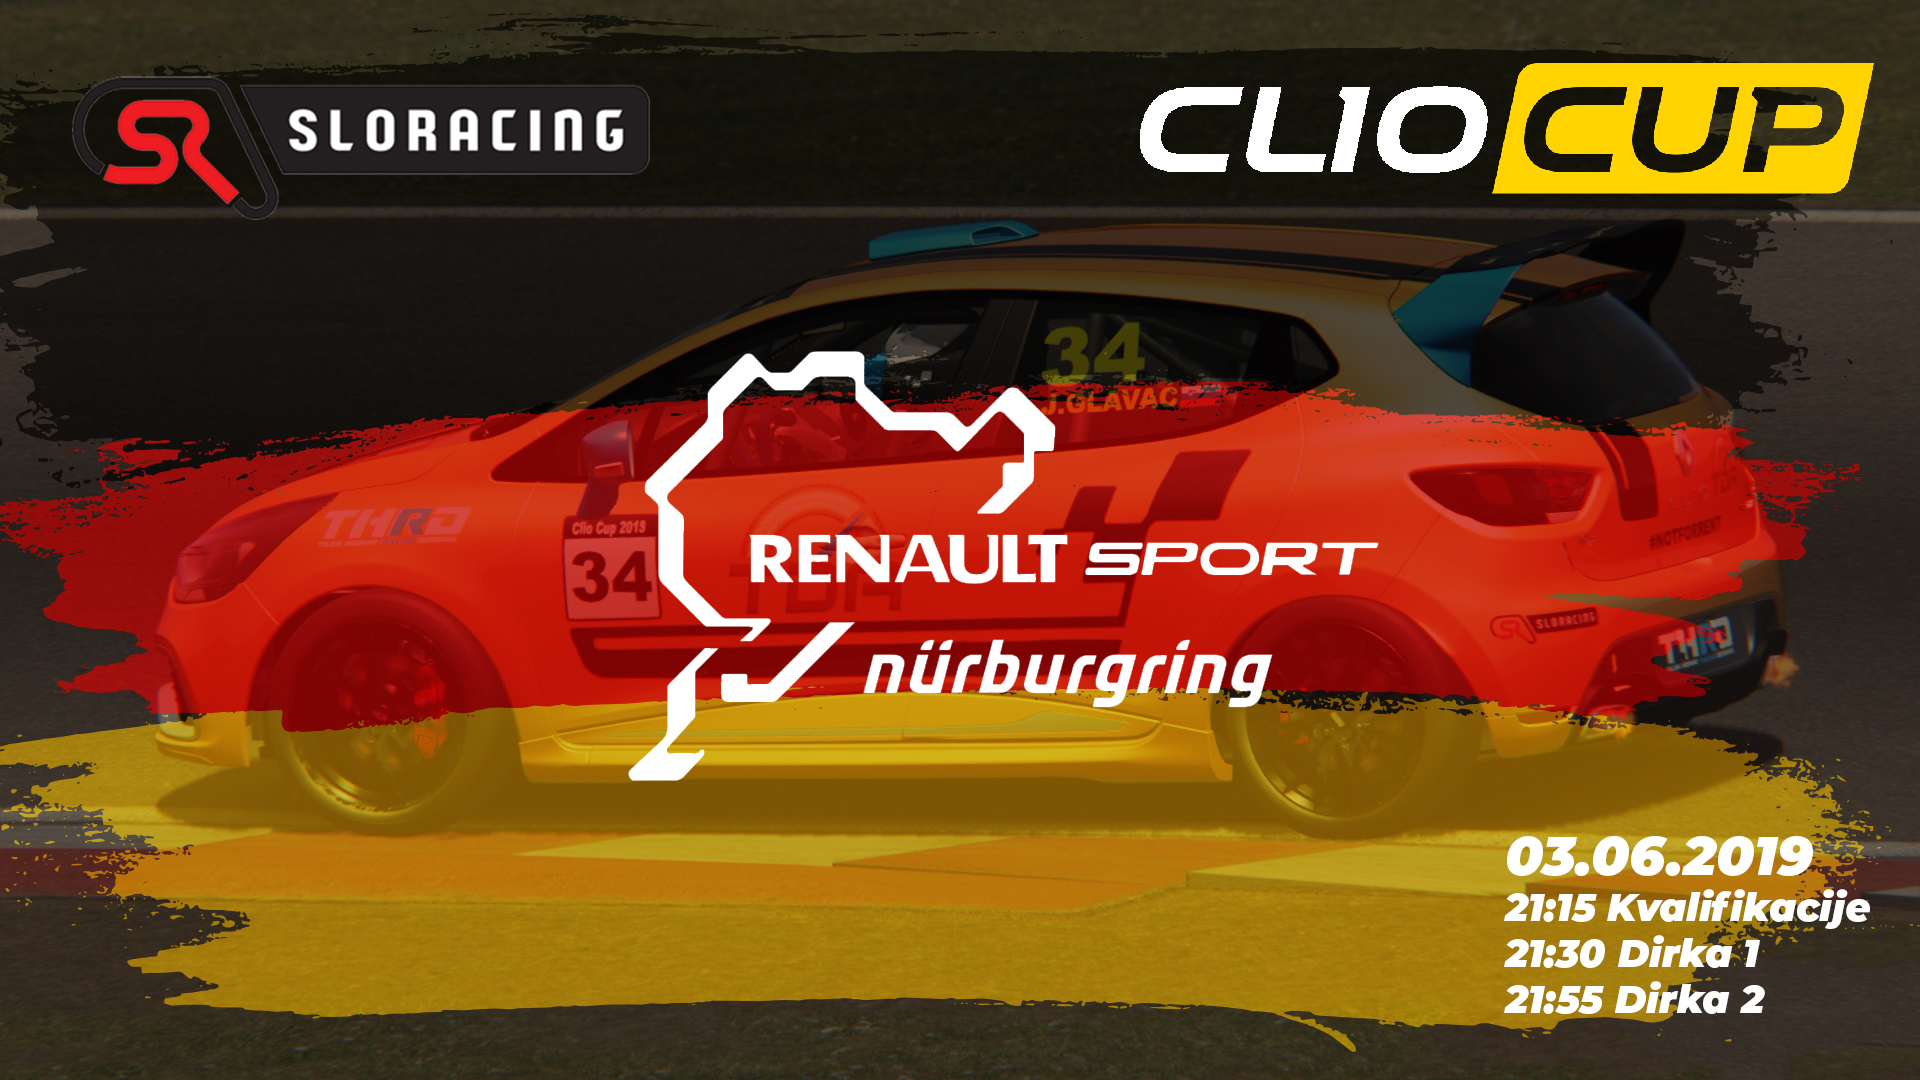 cliocup3.jpg